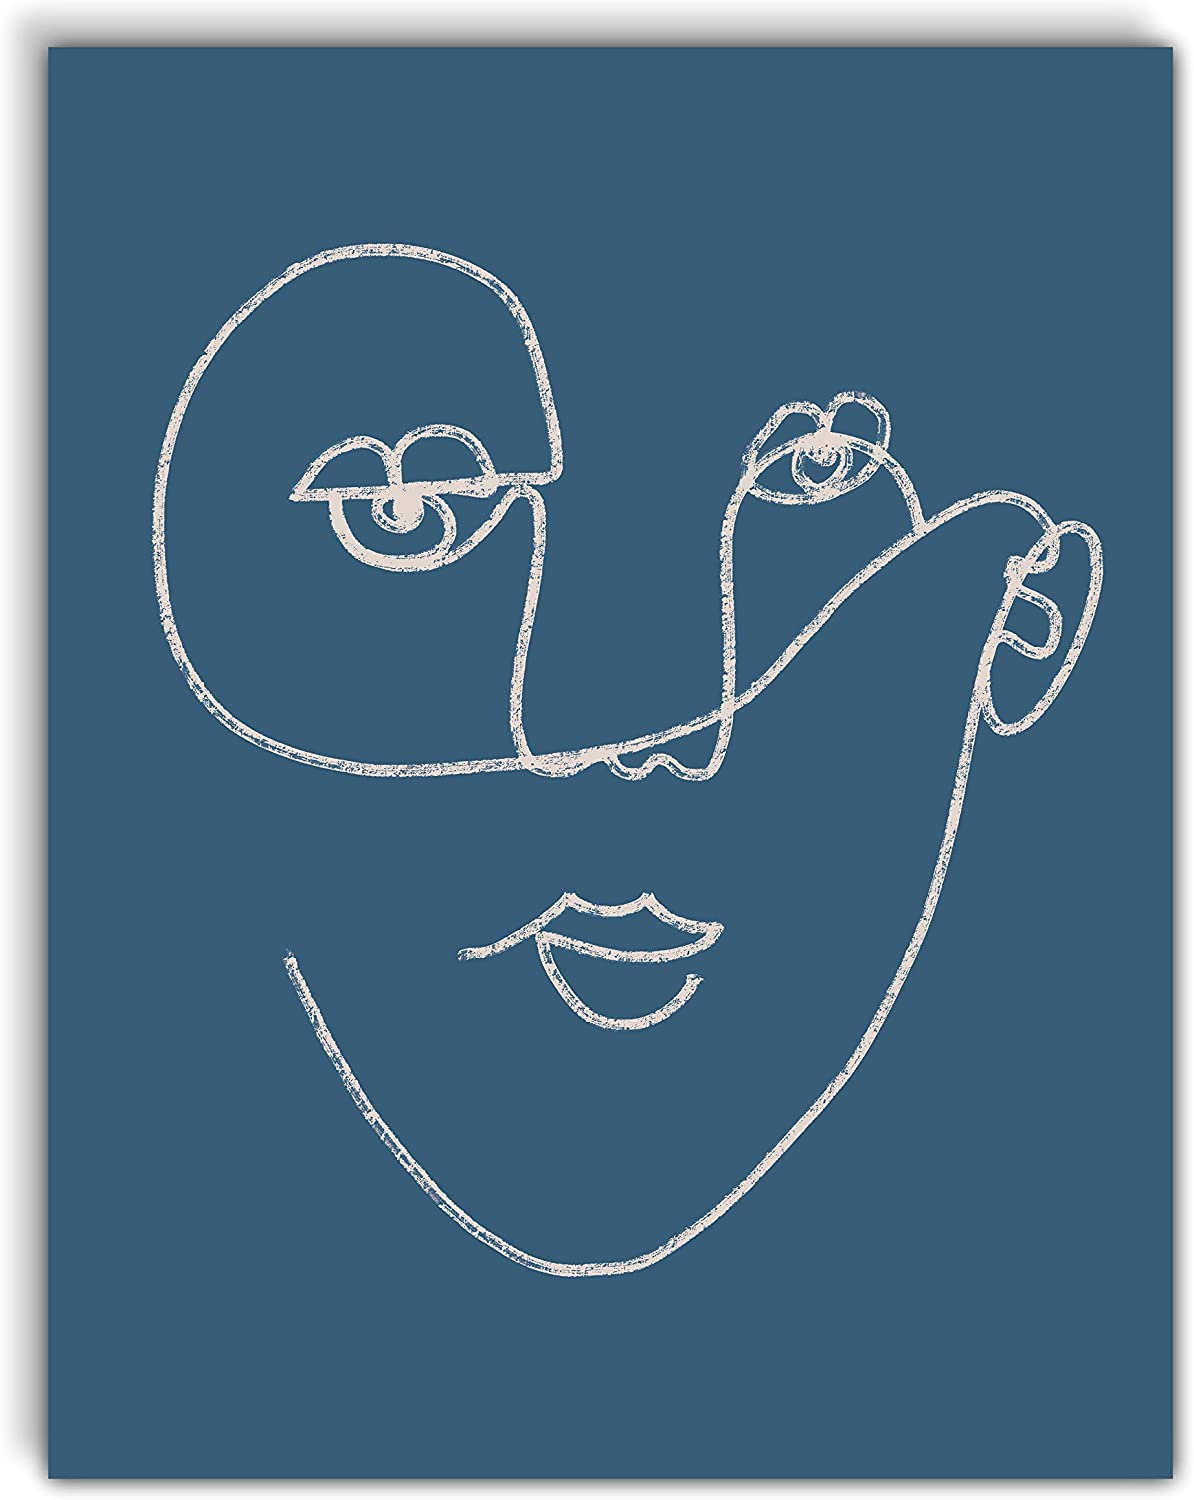 VintBo, Abstract Face, Minimalist Modern Abstract Line Drawing Art Print Poster, Contemporary Wall Art for Home and Bedroom Decor 11x14 inches, Unframed (Blue)